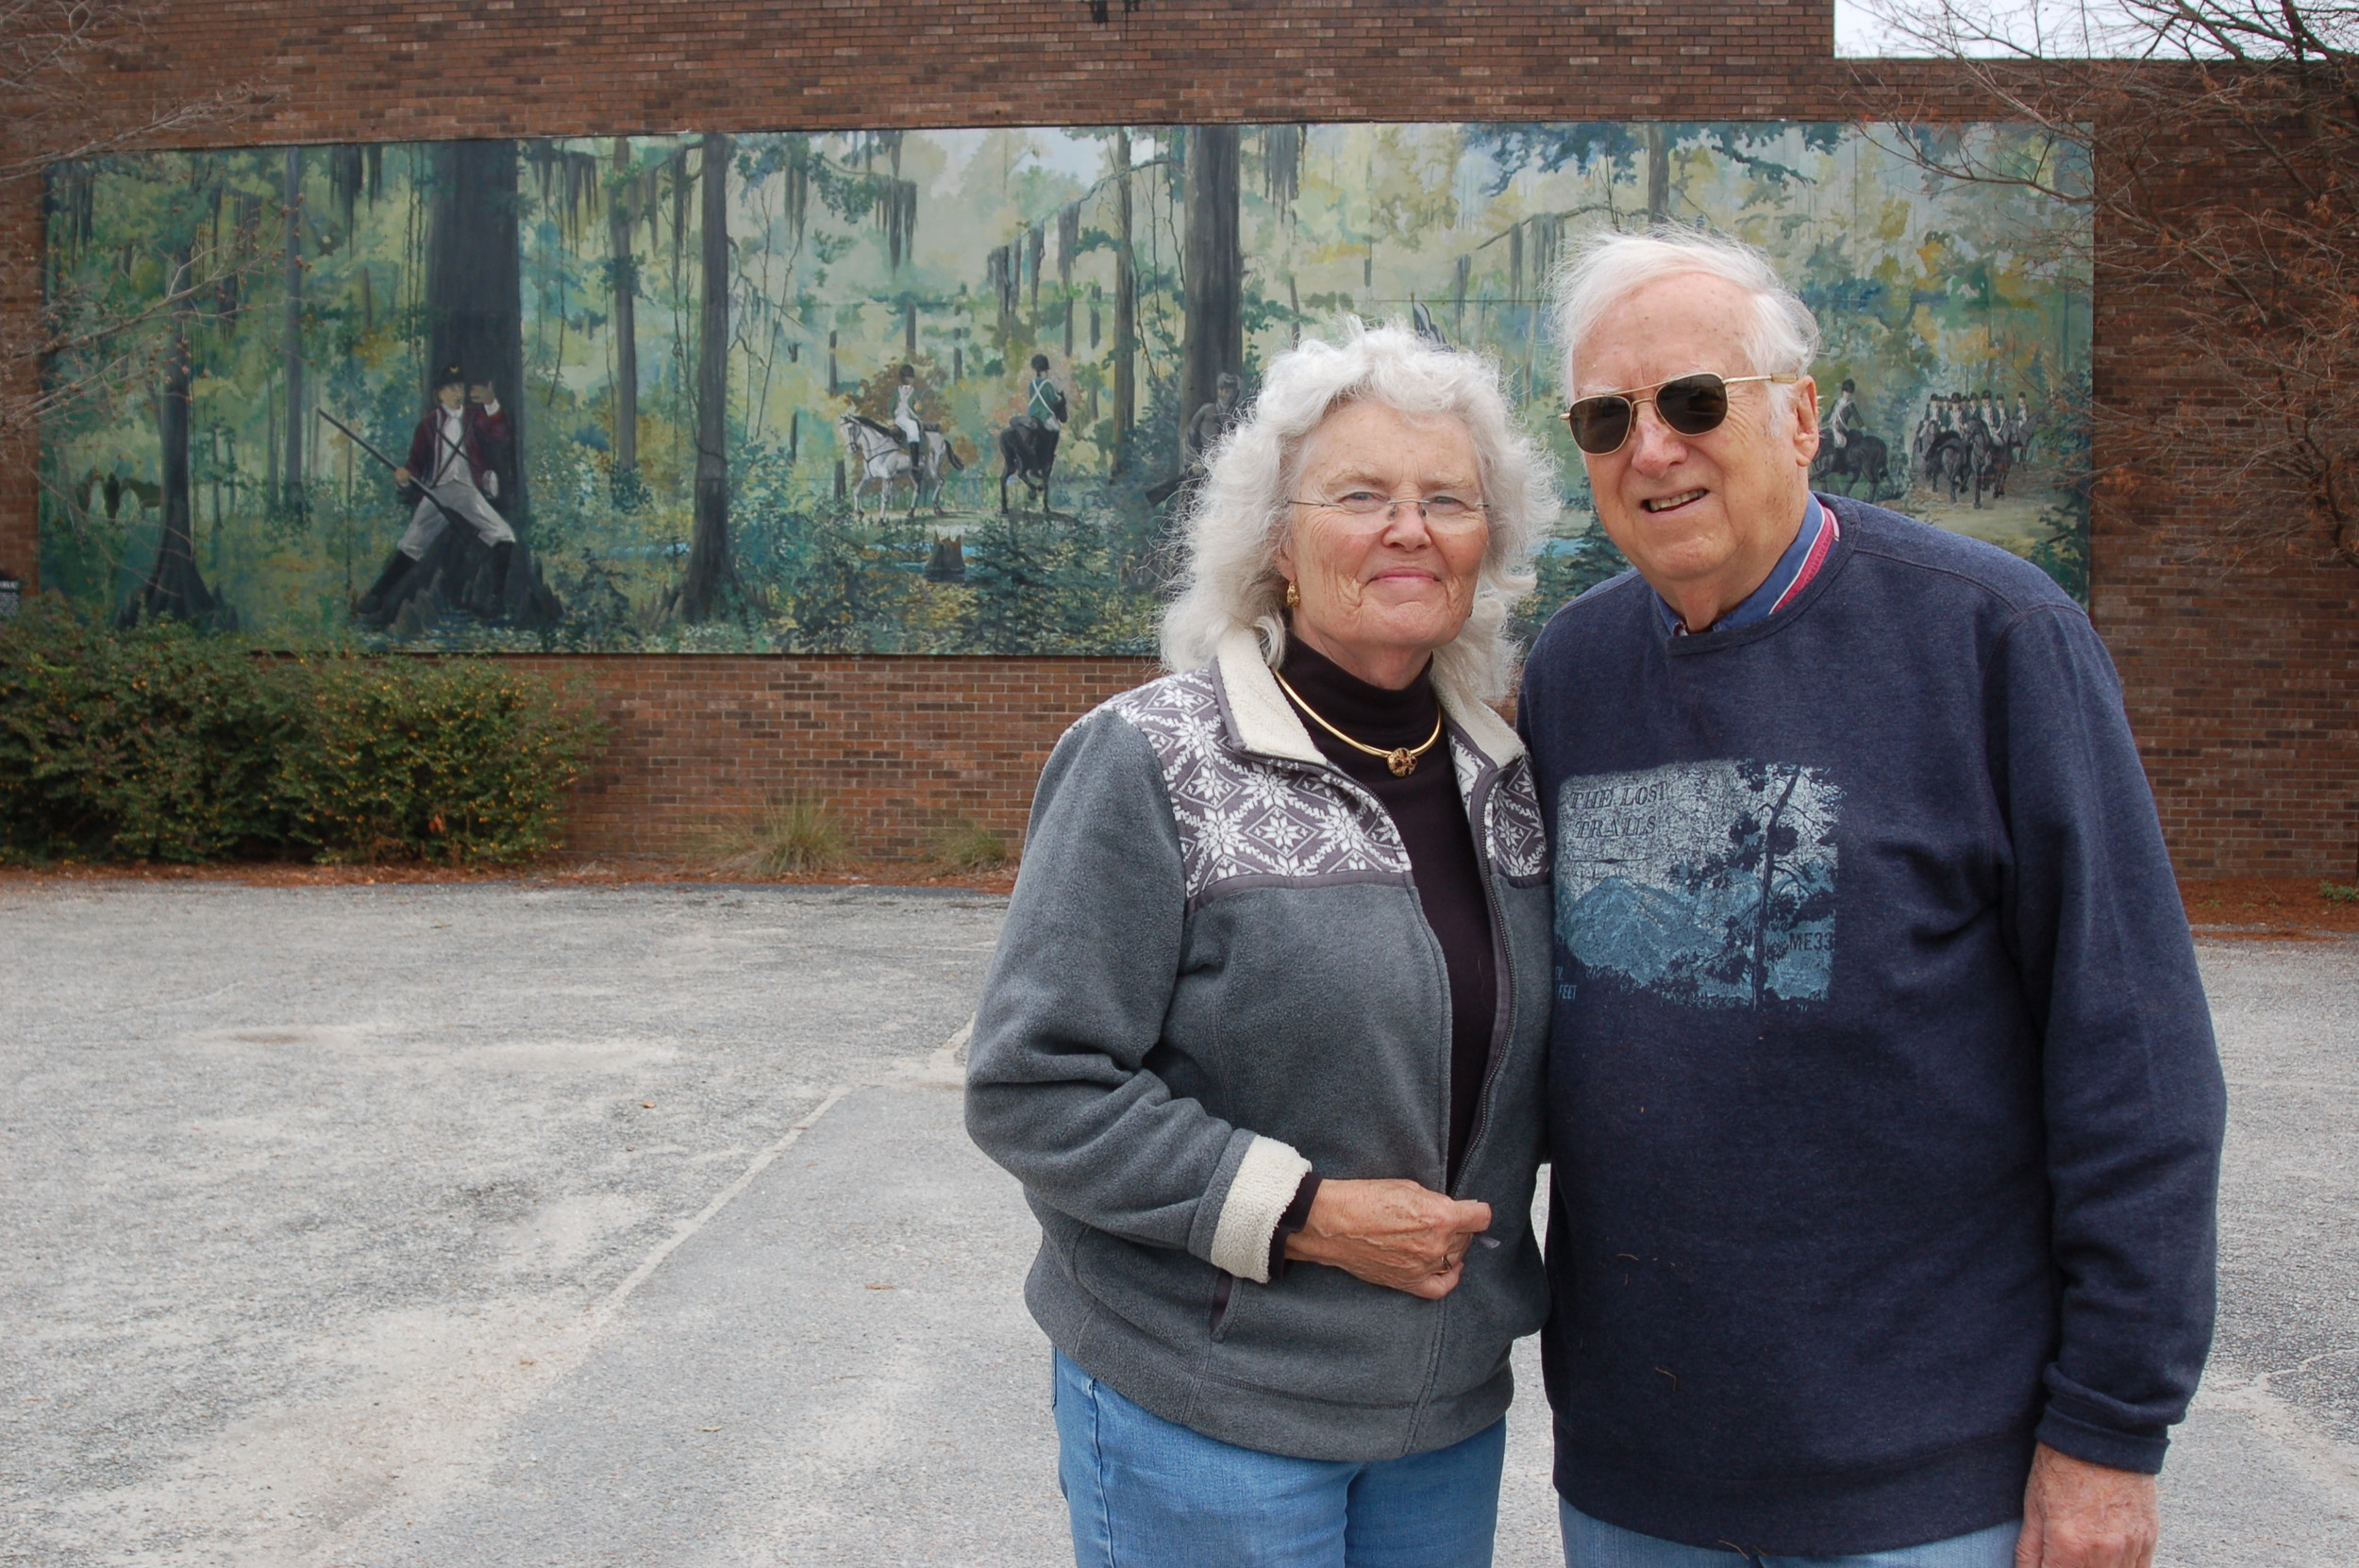 "Carole and George Summers, founders of the Swamp Fox Murals Trail Society, stand in front of the first American Revolutionary War mural completed in Clarendon County in 2001. The mural depicts the ""Swamp Fox at Ox Swamp"" and is located at the Manning Fire Department building. The mural was painted by Stateburg resident Will Anderson."